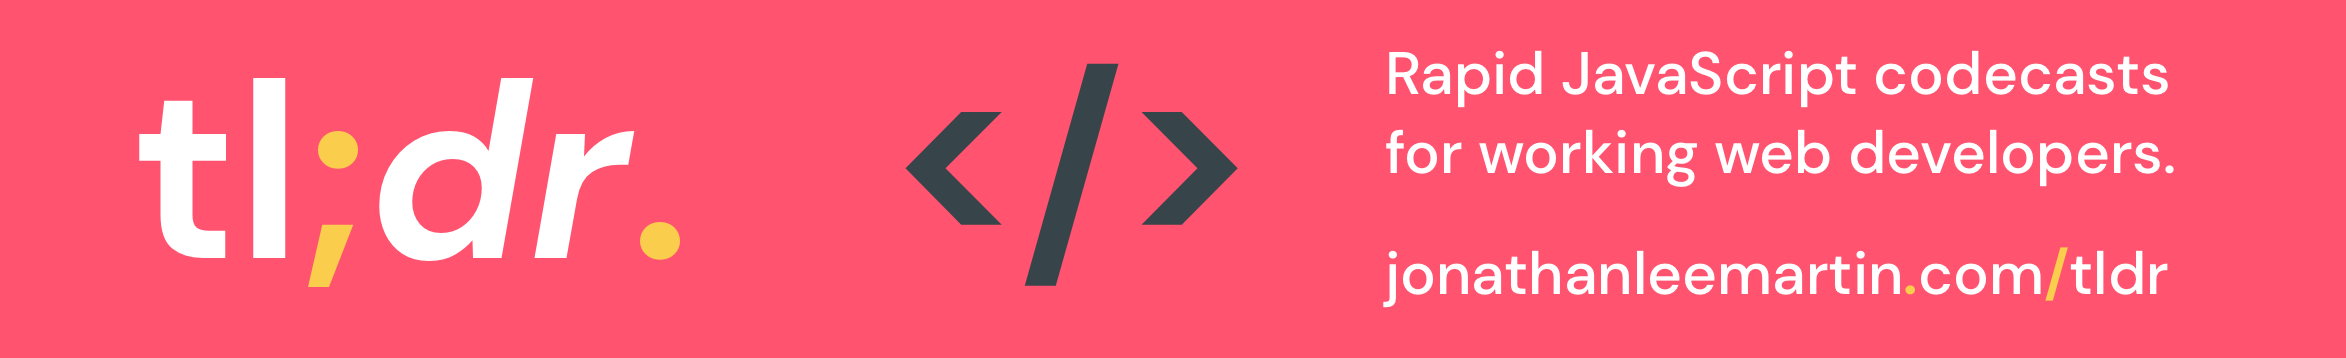 TL;DR: Rapid JavaScript codecasts for working web developers.